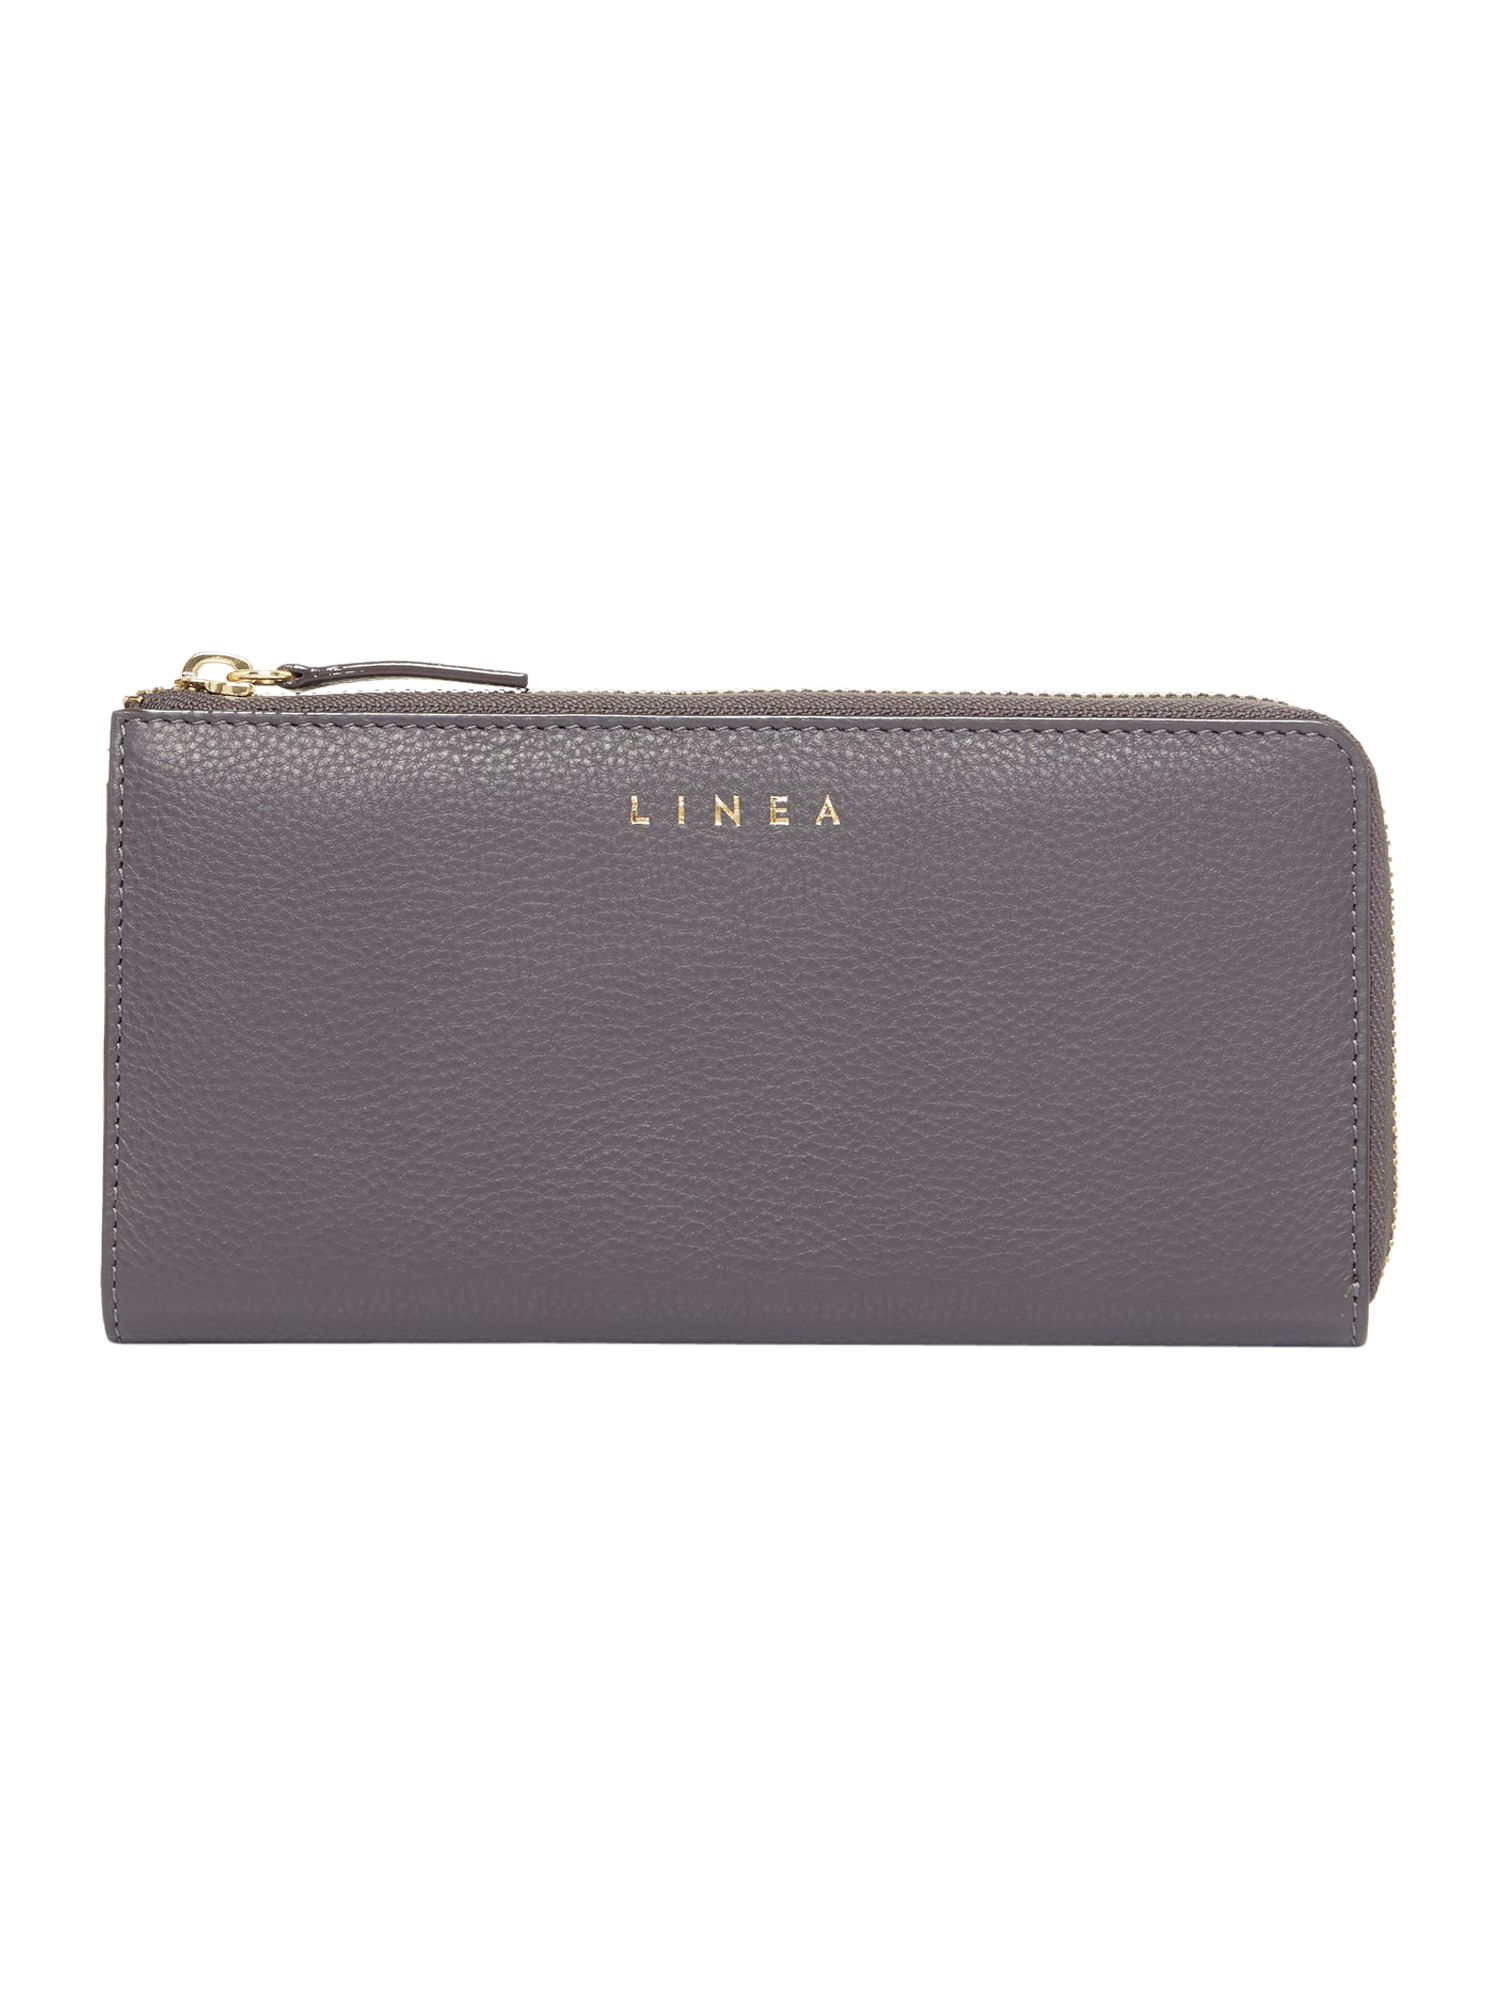 Linea Bennie Zip Around Leather Purse, Grey